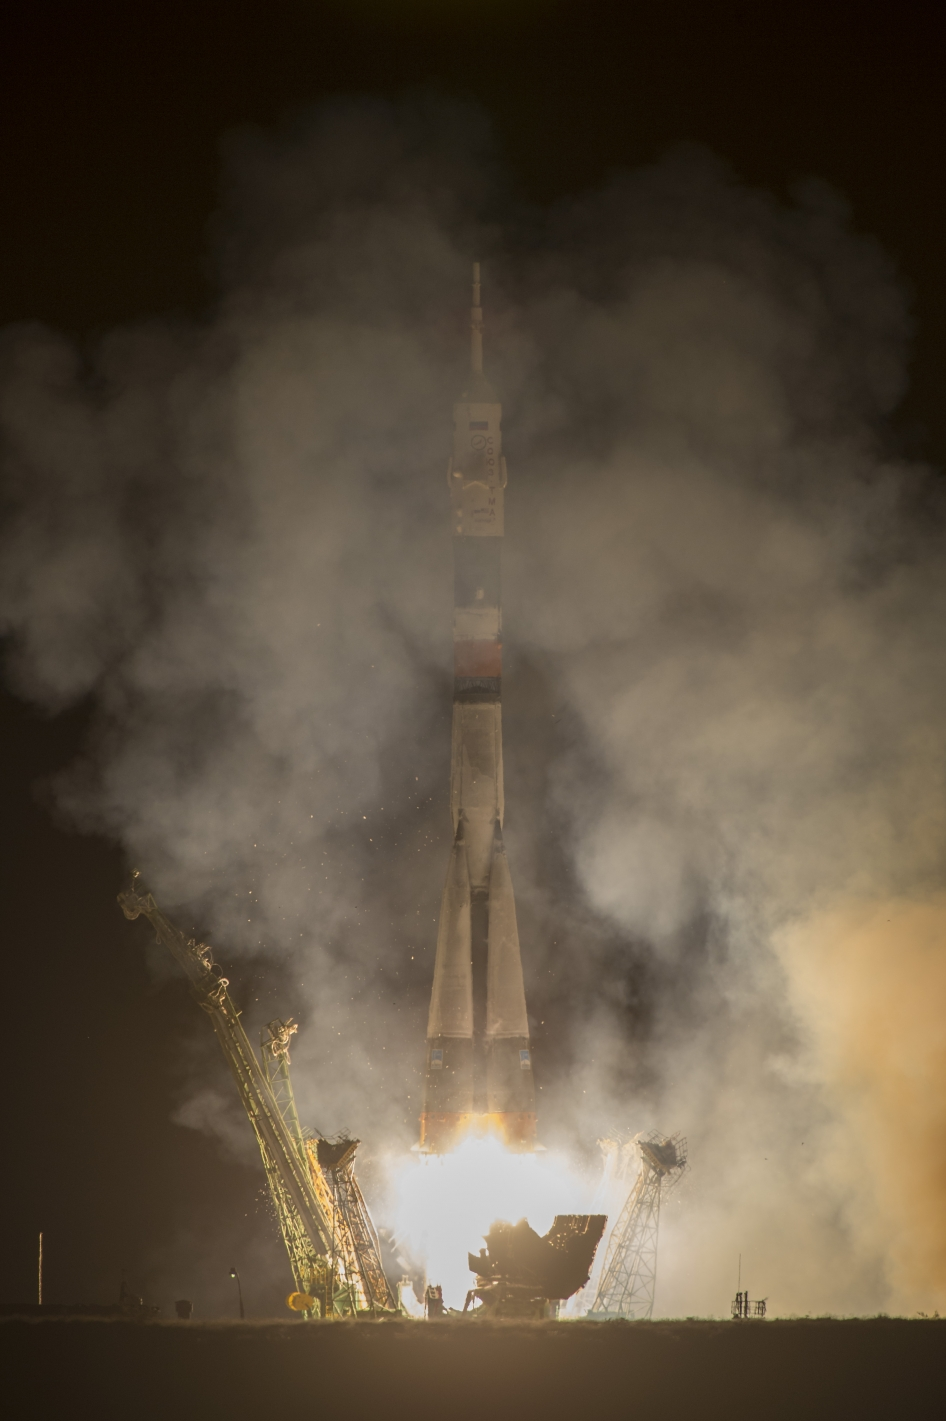 The Soyuz TMA-10M rocket launches from the Baikonur Cosmodrome in Kazakhstan on Thurs., Sept. 26, 2013 (Kazakh time) carrying Expedition 37 Soyuz Commander Oleg Kotov, NASA Flight Engineer Michael Hopkins and Russian Flight Engineer Sergey Ryazanskiy to the International Space Station.